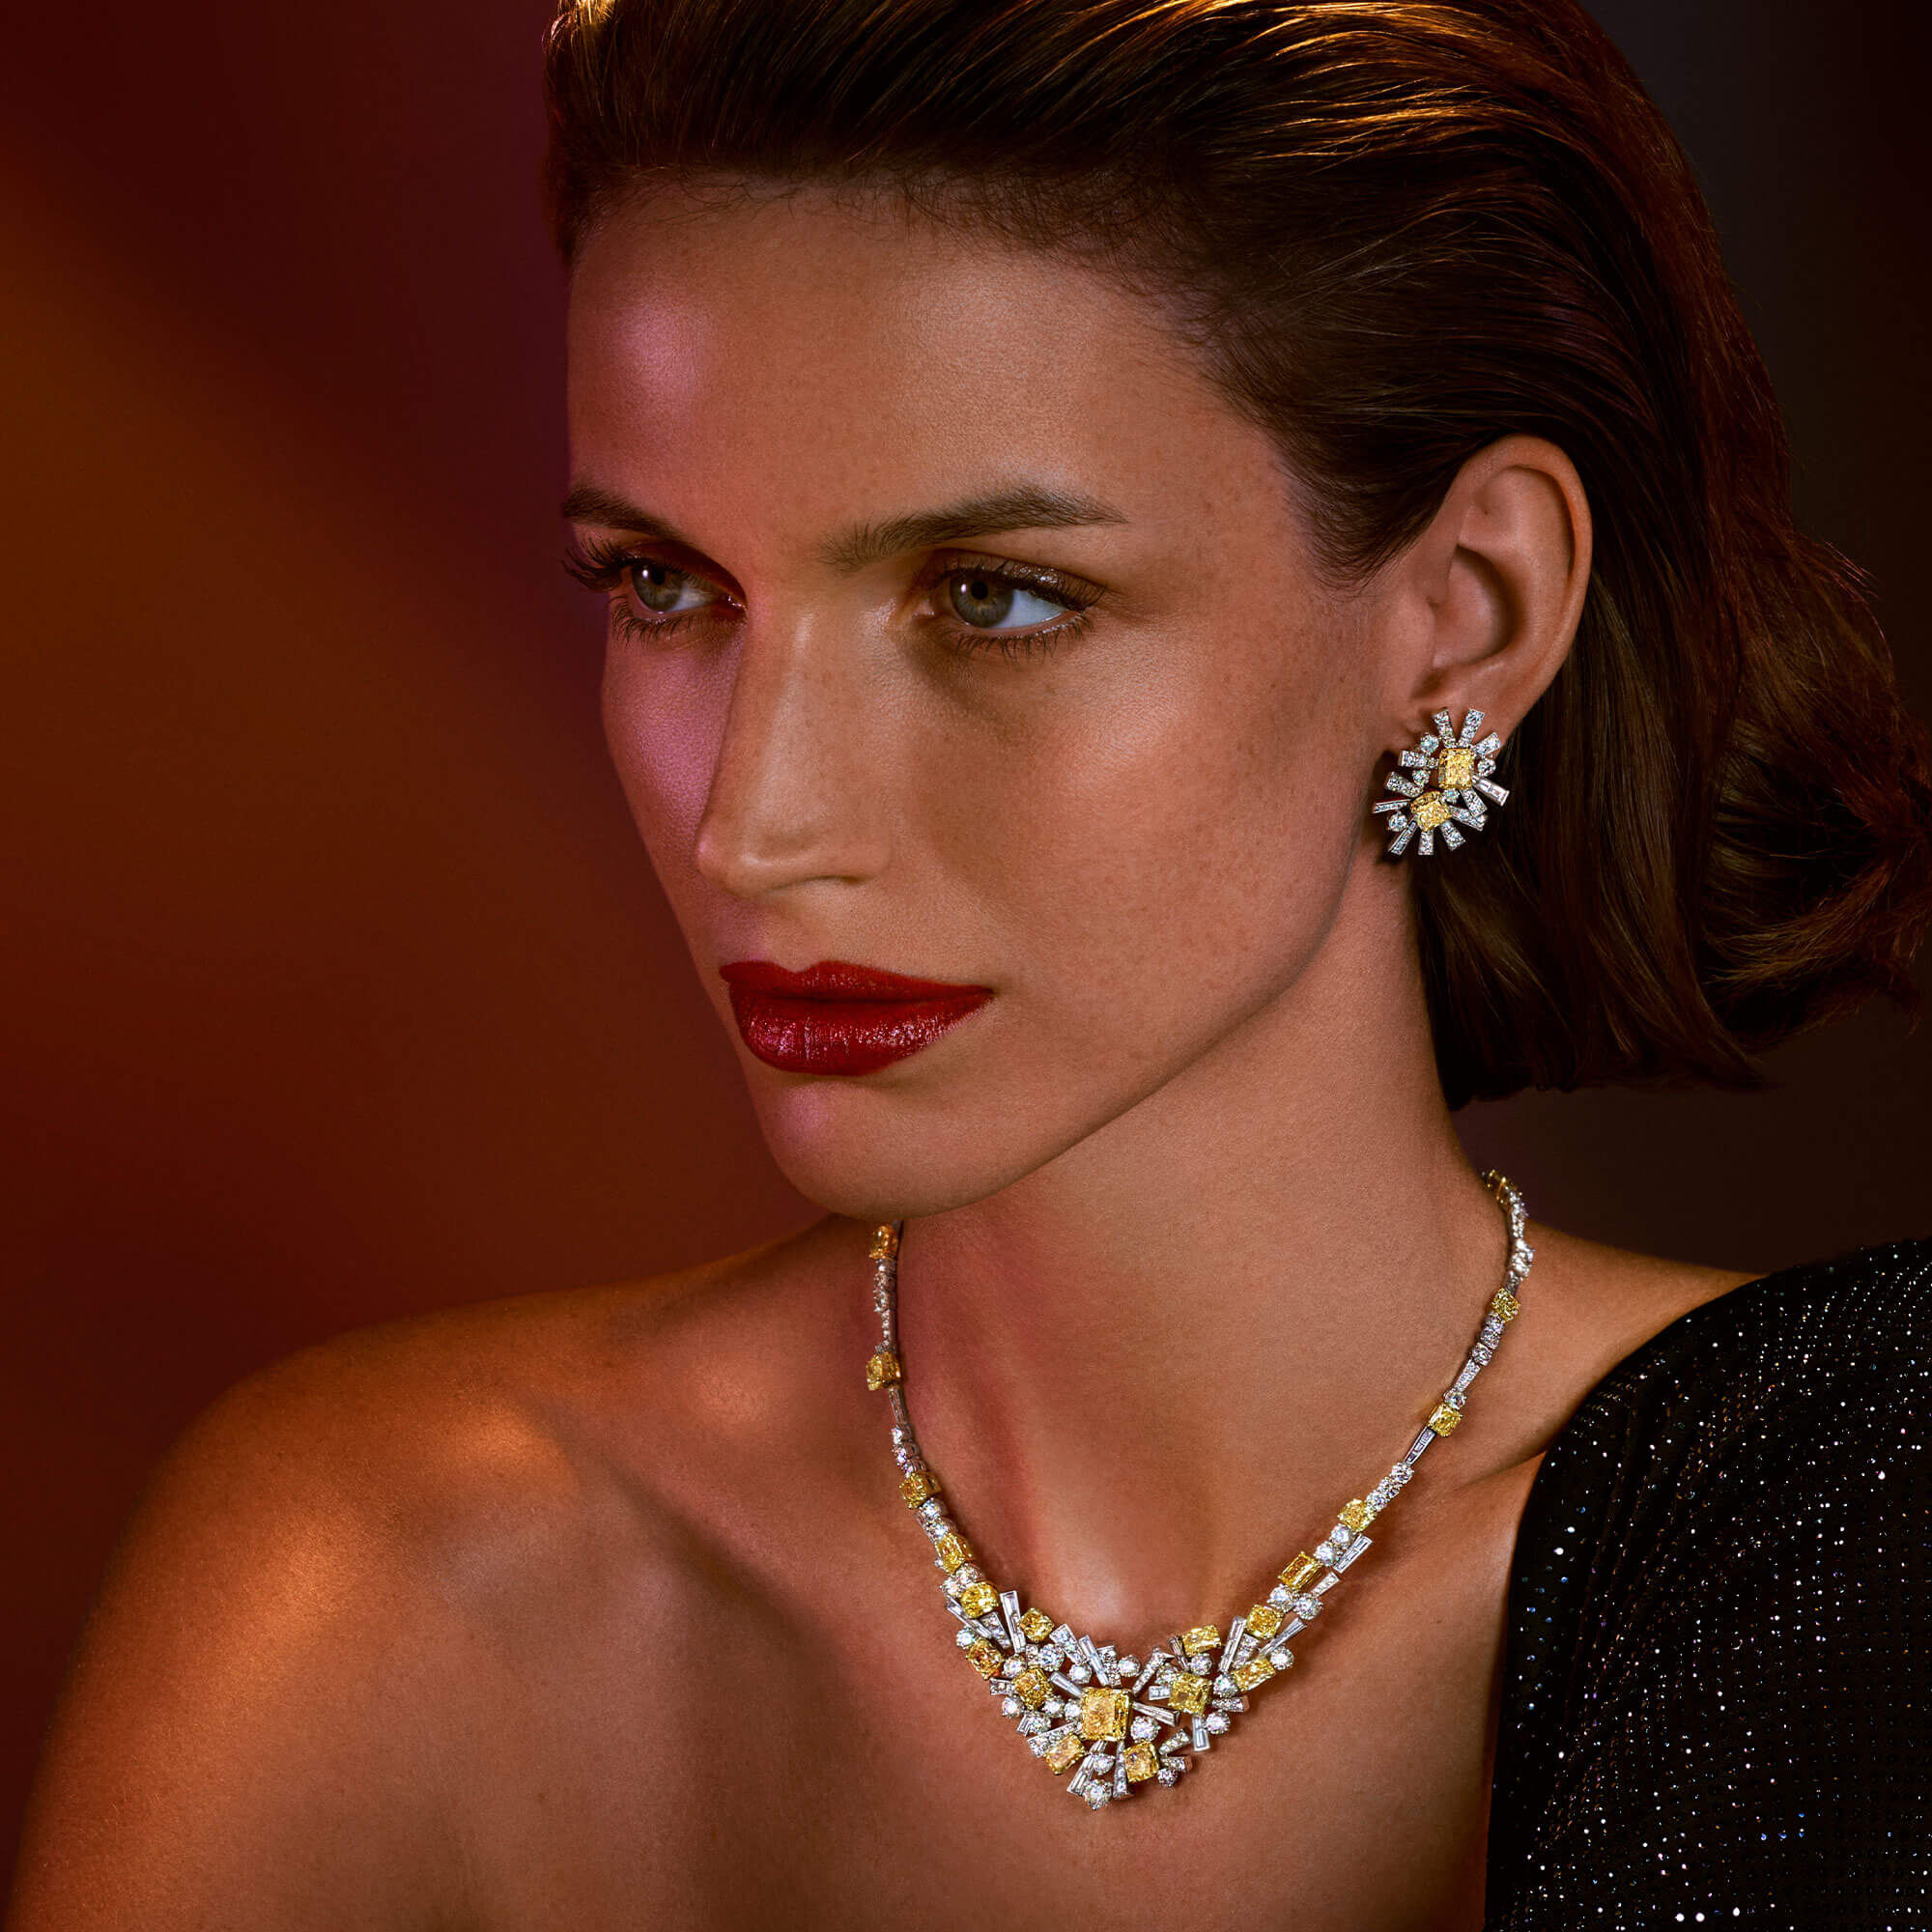 A model wears high jewellery Fancy Yellow and white diamond Threads necklace and earrings from the Graff high jewellery collection